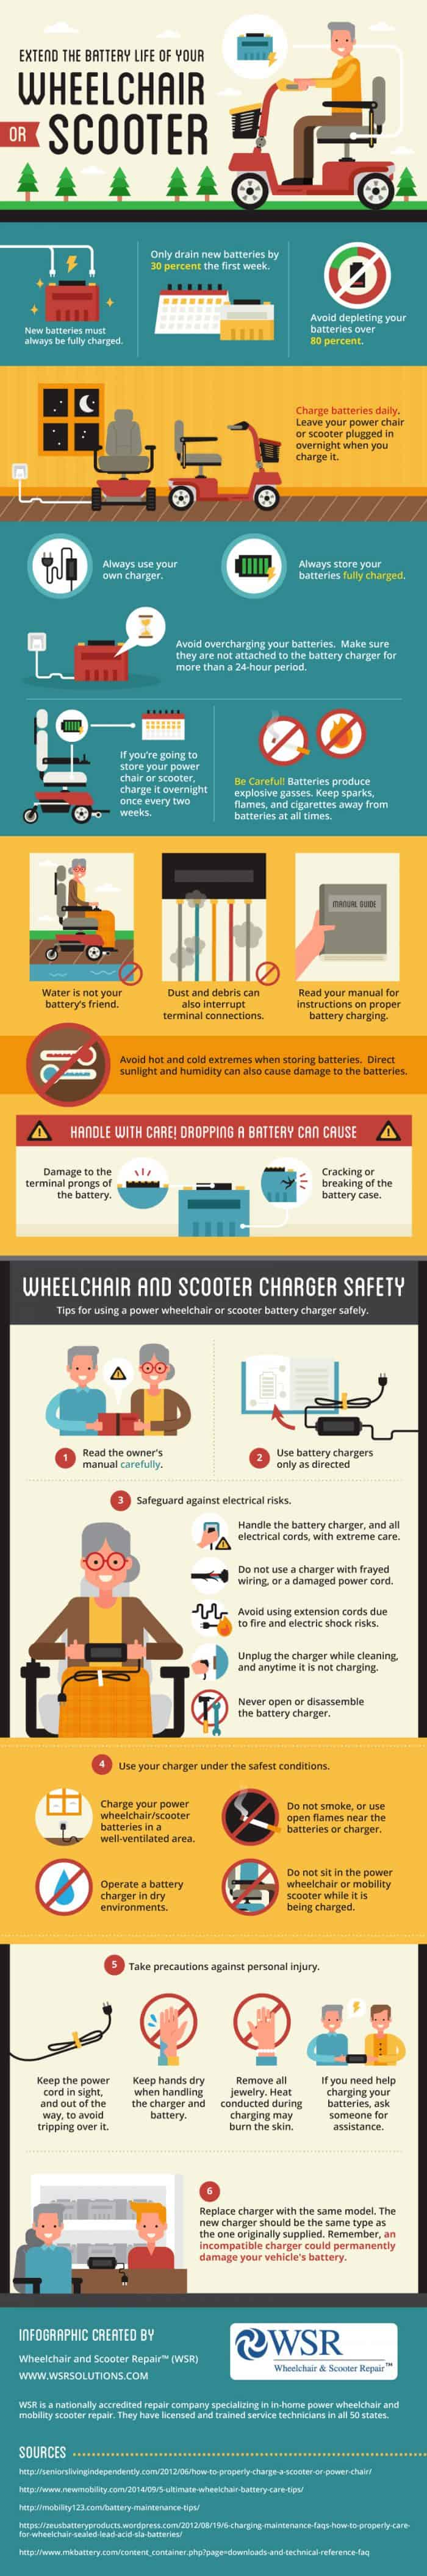 Extend the Battery Life Of Your Wheelchair or Scooter